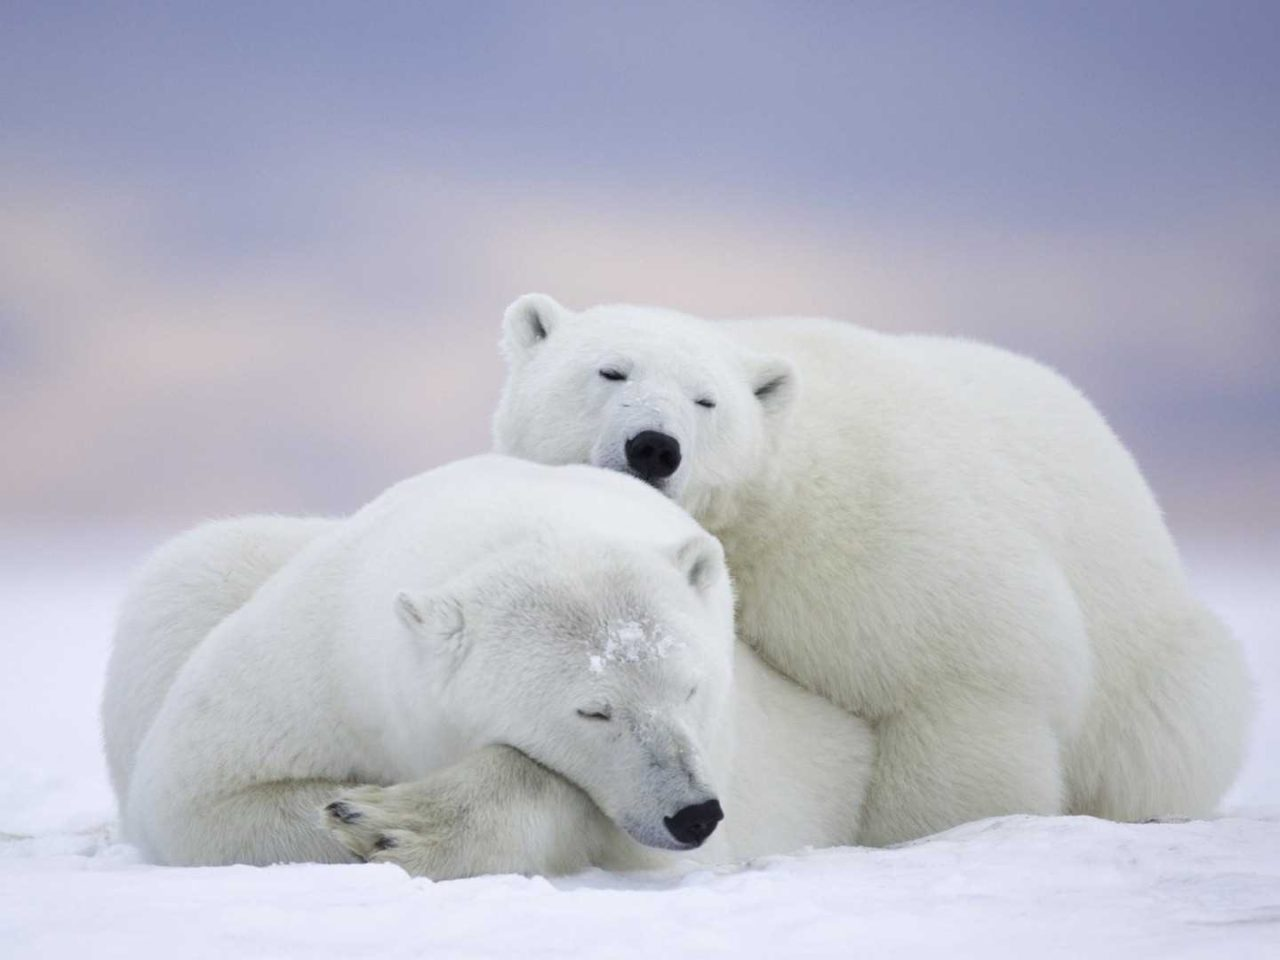 Animal Wallpaper Desktop Background Polar Bear Mating Takes Place On The Ice Between April And